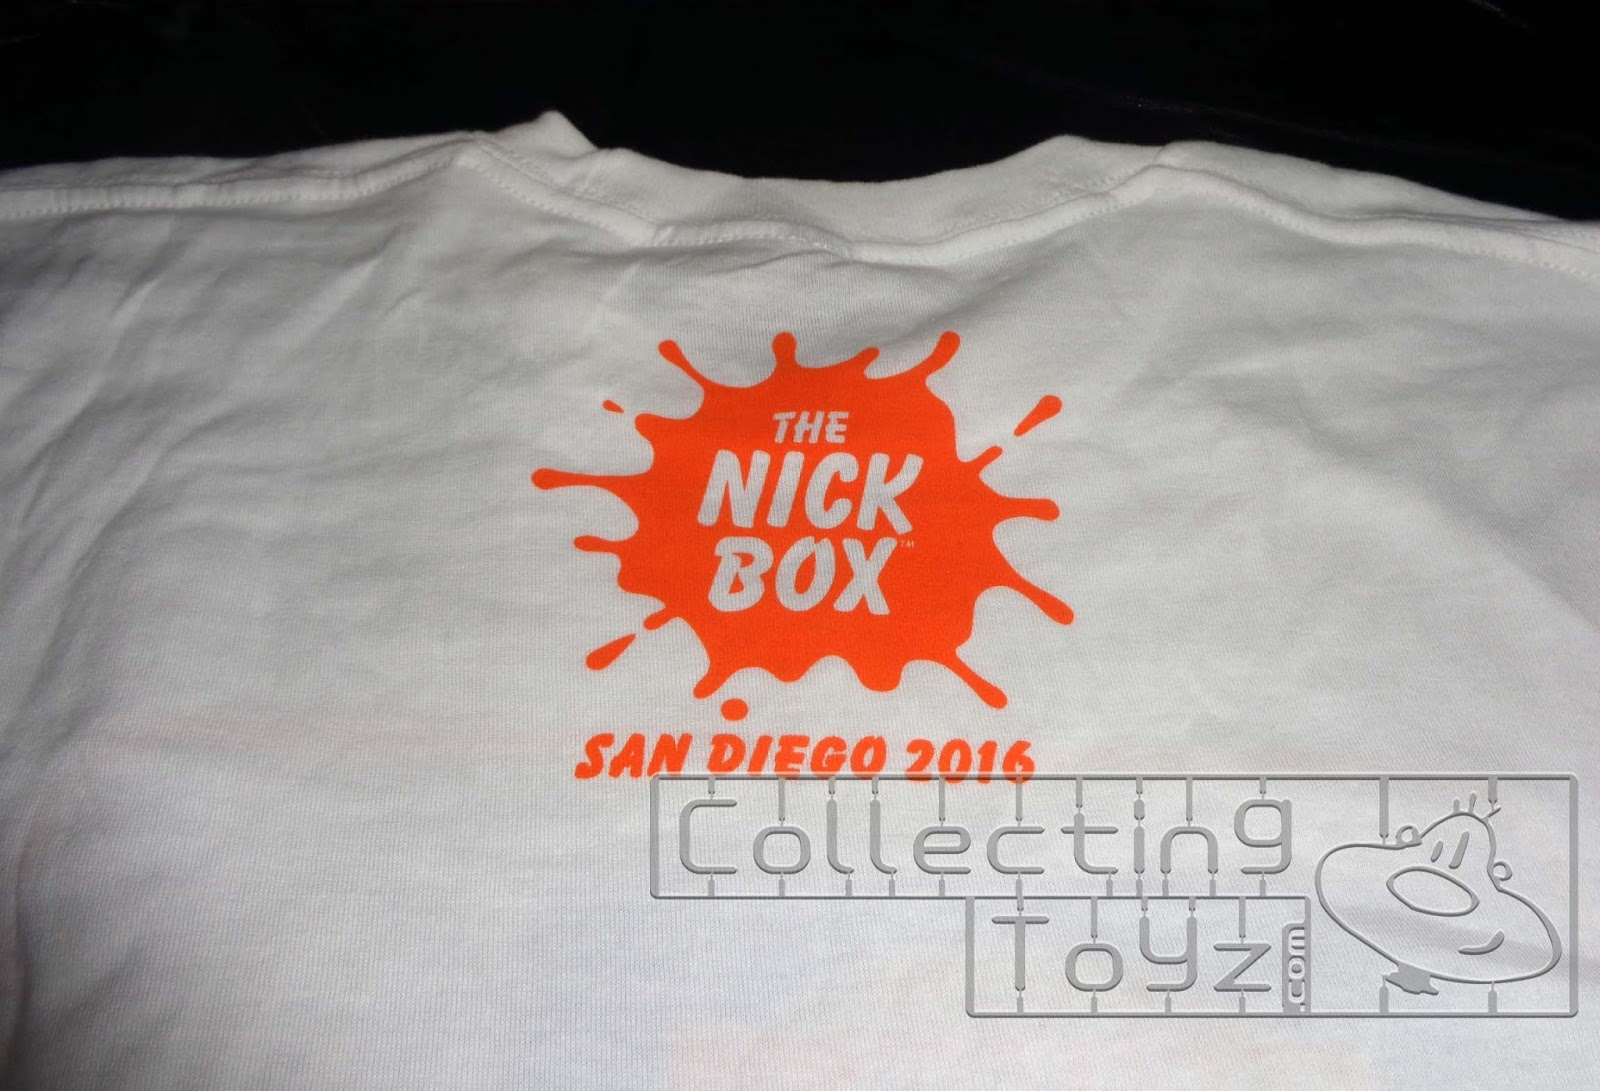 de3b0b79 ... is the bonus SDCC 2016 T-shirt that you get when purchasing The Nick  Box at SDCC. Above is the front of the shirt and below is the back of the  Shirt.